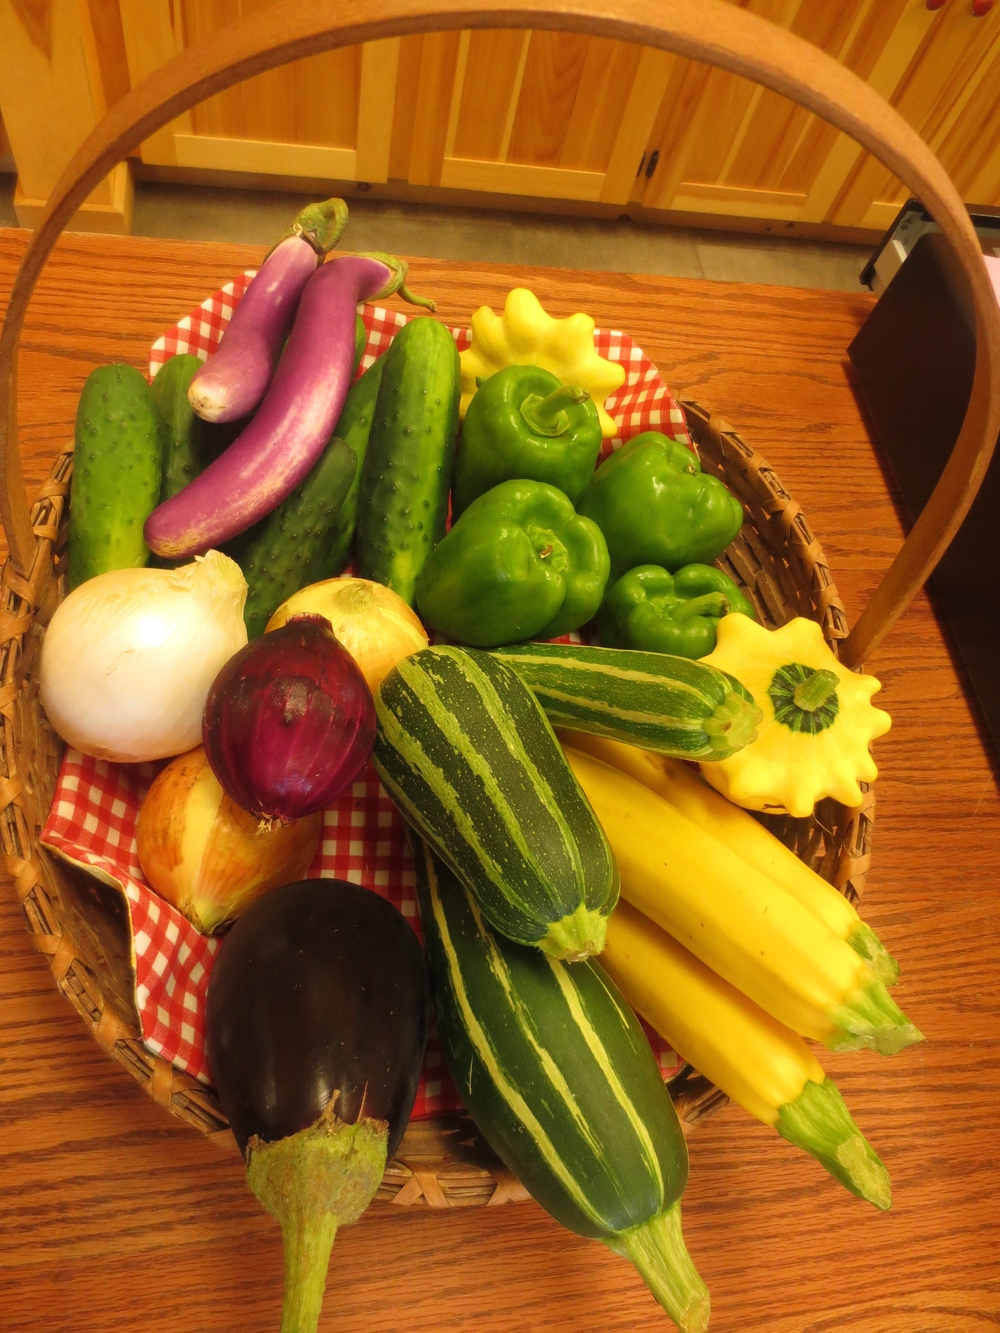 Basket of Fresh Produce : Eggplant, Zucchini, Onions, Peppers, Cucumbers, and Summer Squash